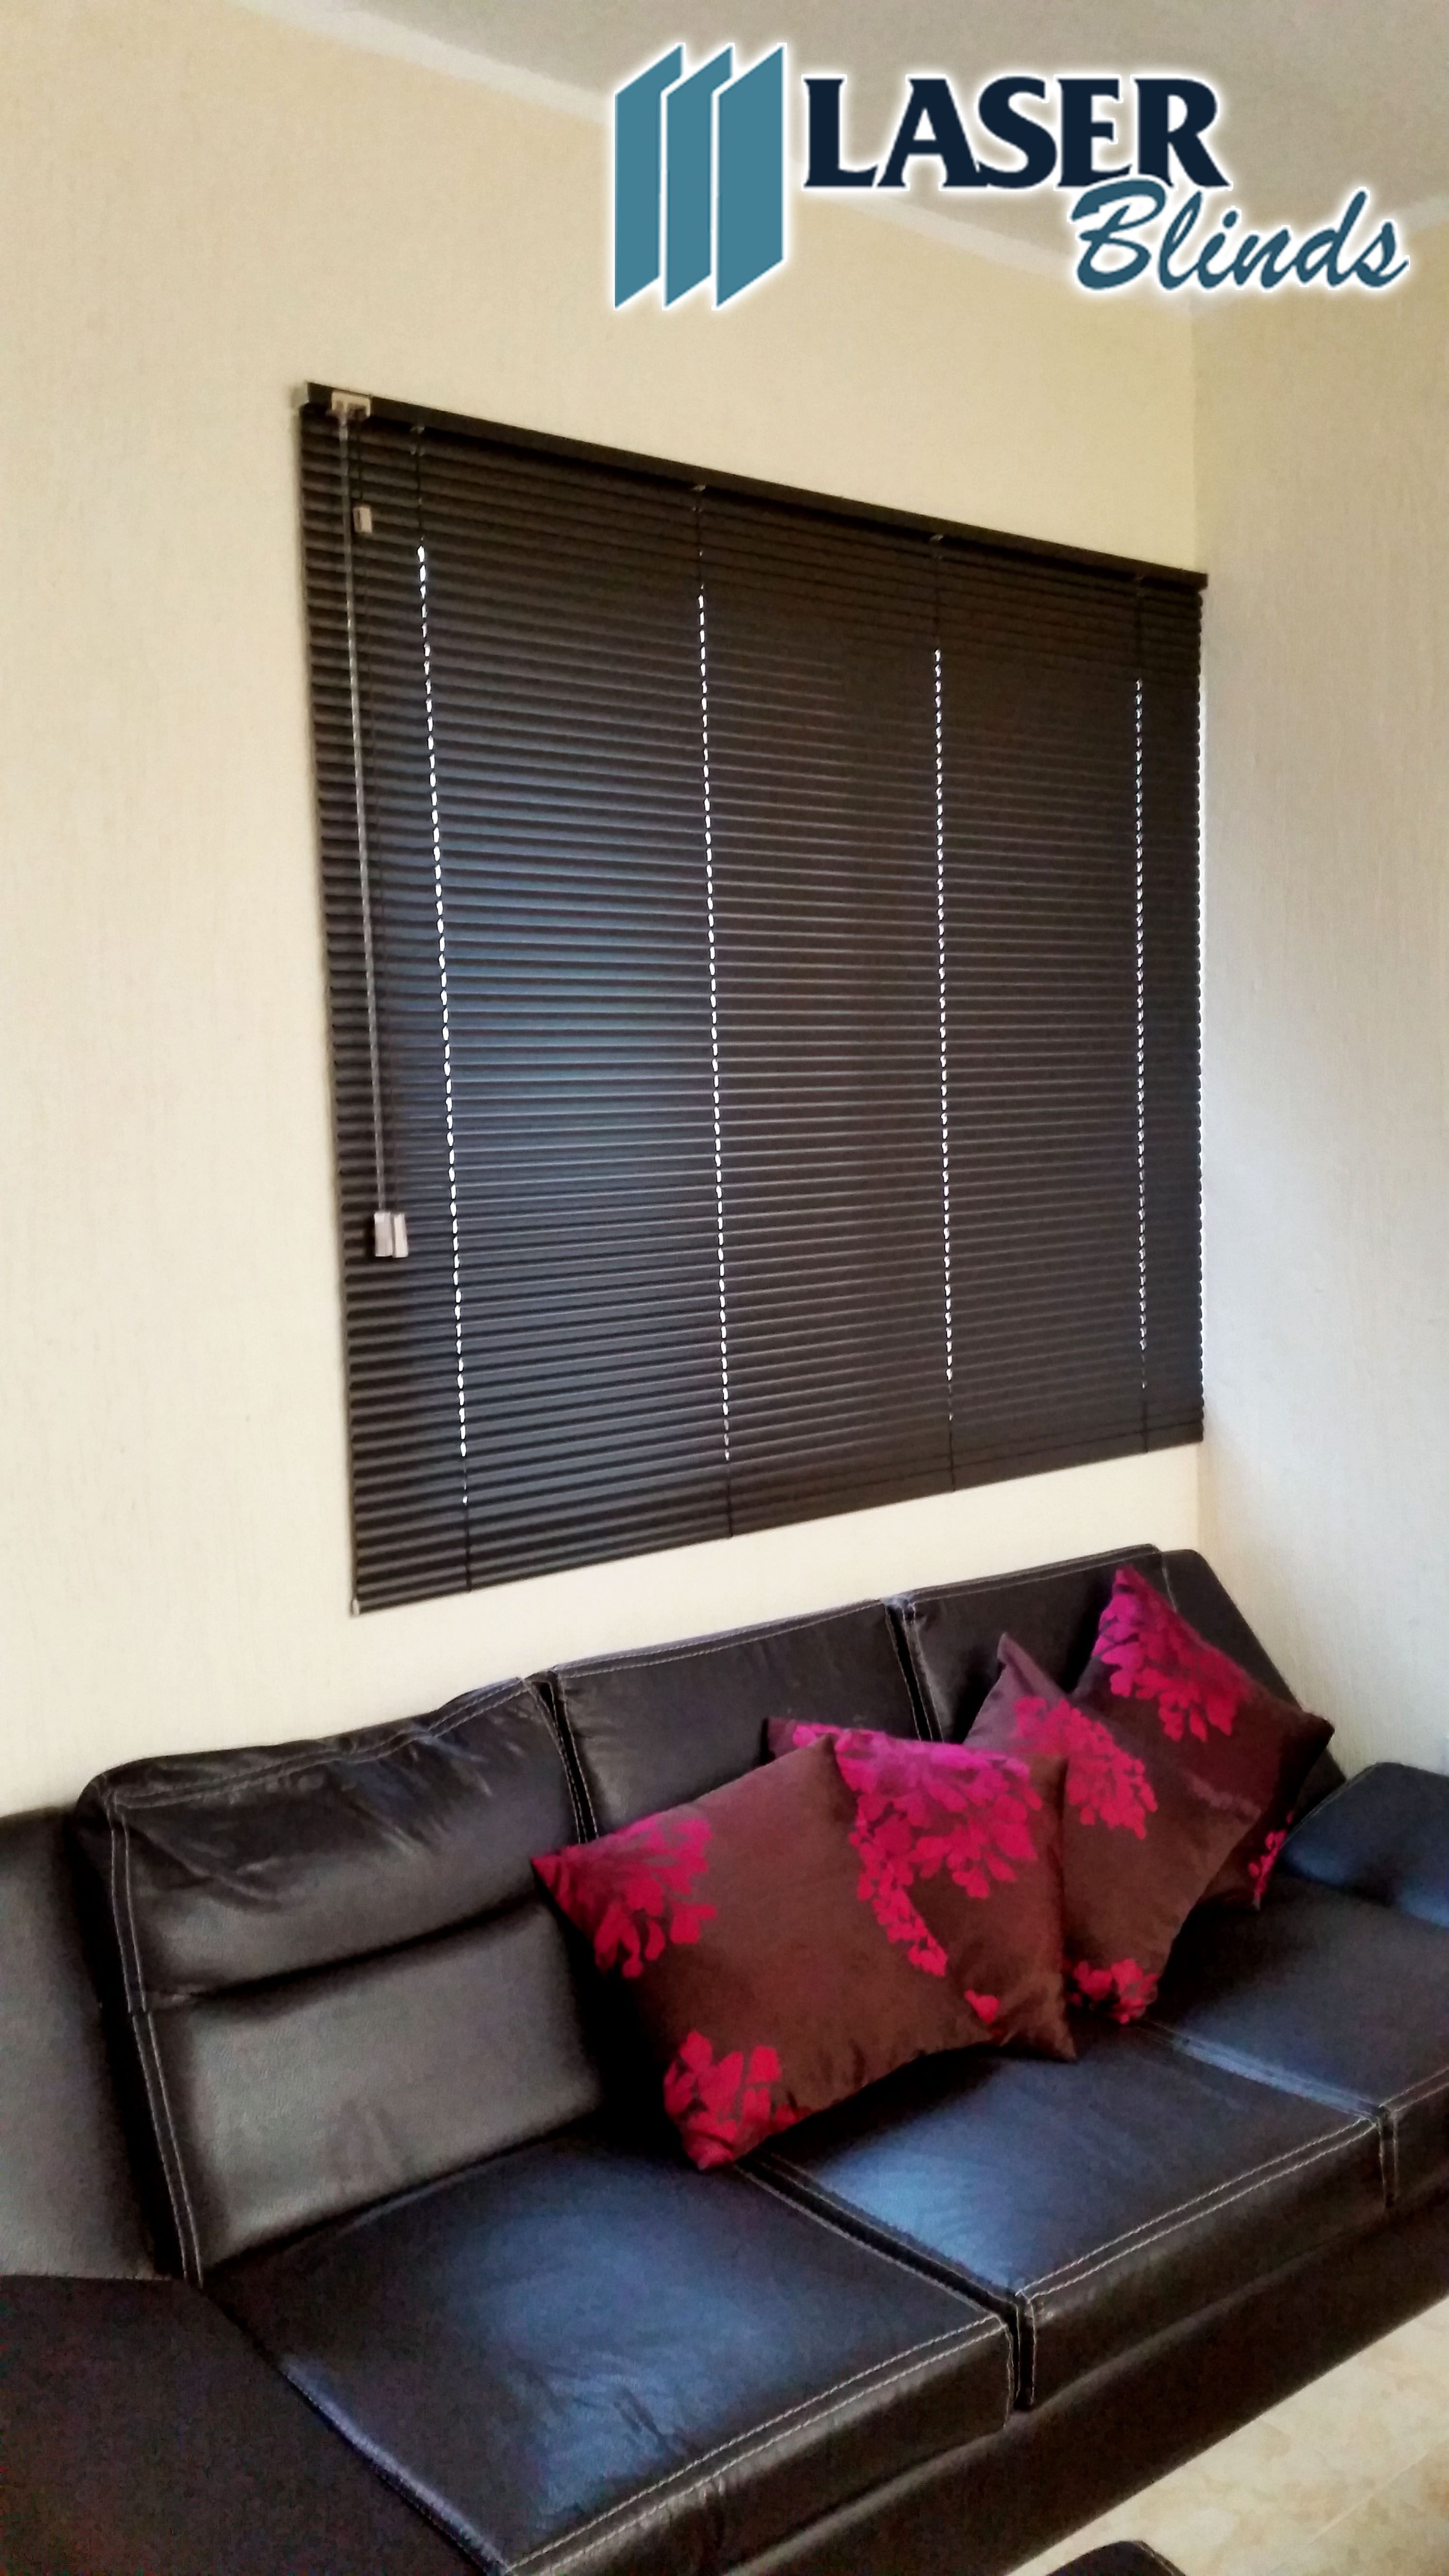 Ventana Con Persiana Interior Persiana Horizontal De Aluminio Color Chocolate Laser Blinds